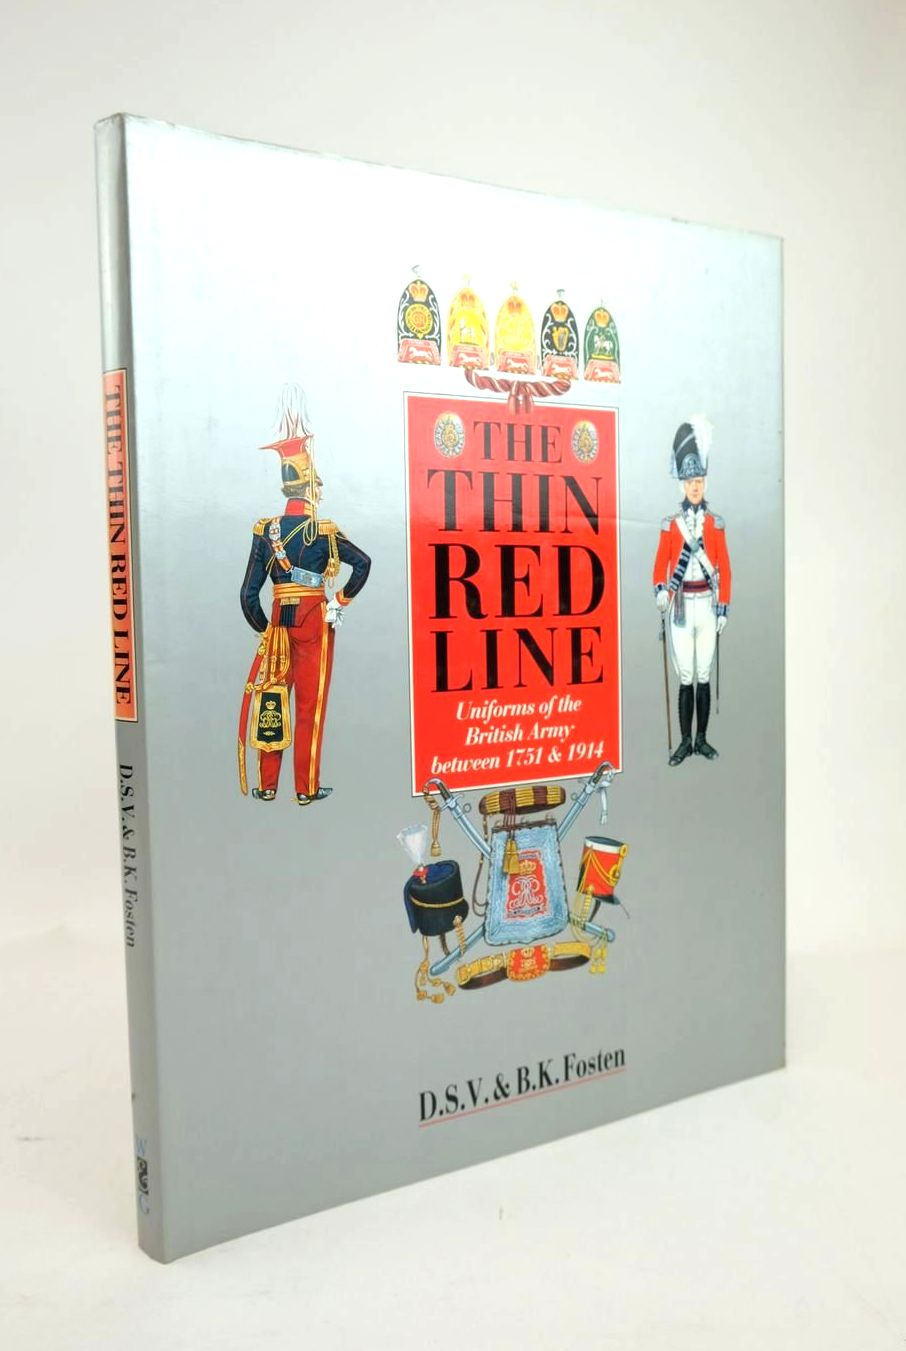 Photo of THE THIN RED LINE: UNIFORMS OF THE BRITISH ARMY BETWEEN 1751 & 1914 written by Fosten, D.S.V. Fosten, B.K. published by Windrow & Greene (STOCK CODE: 1820864)  for sale by Stella & Rose's Books